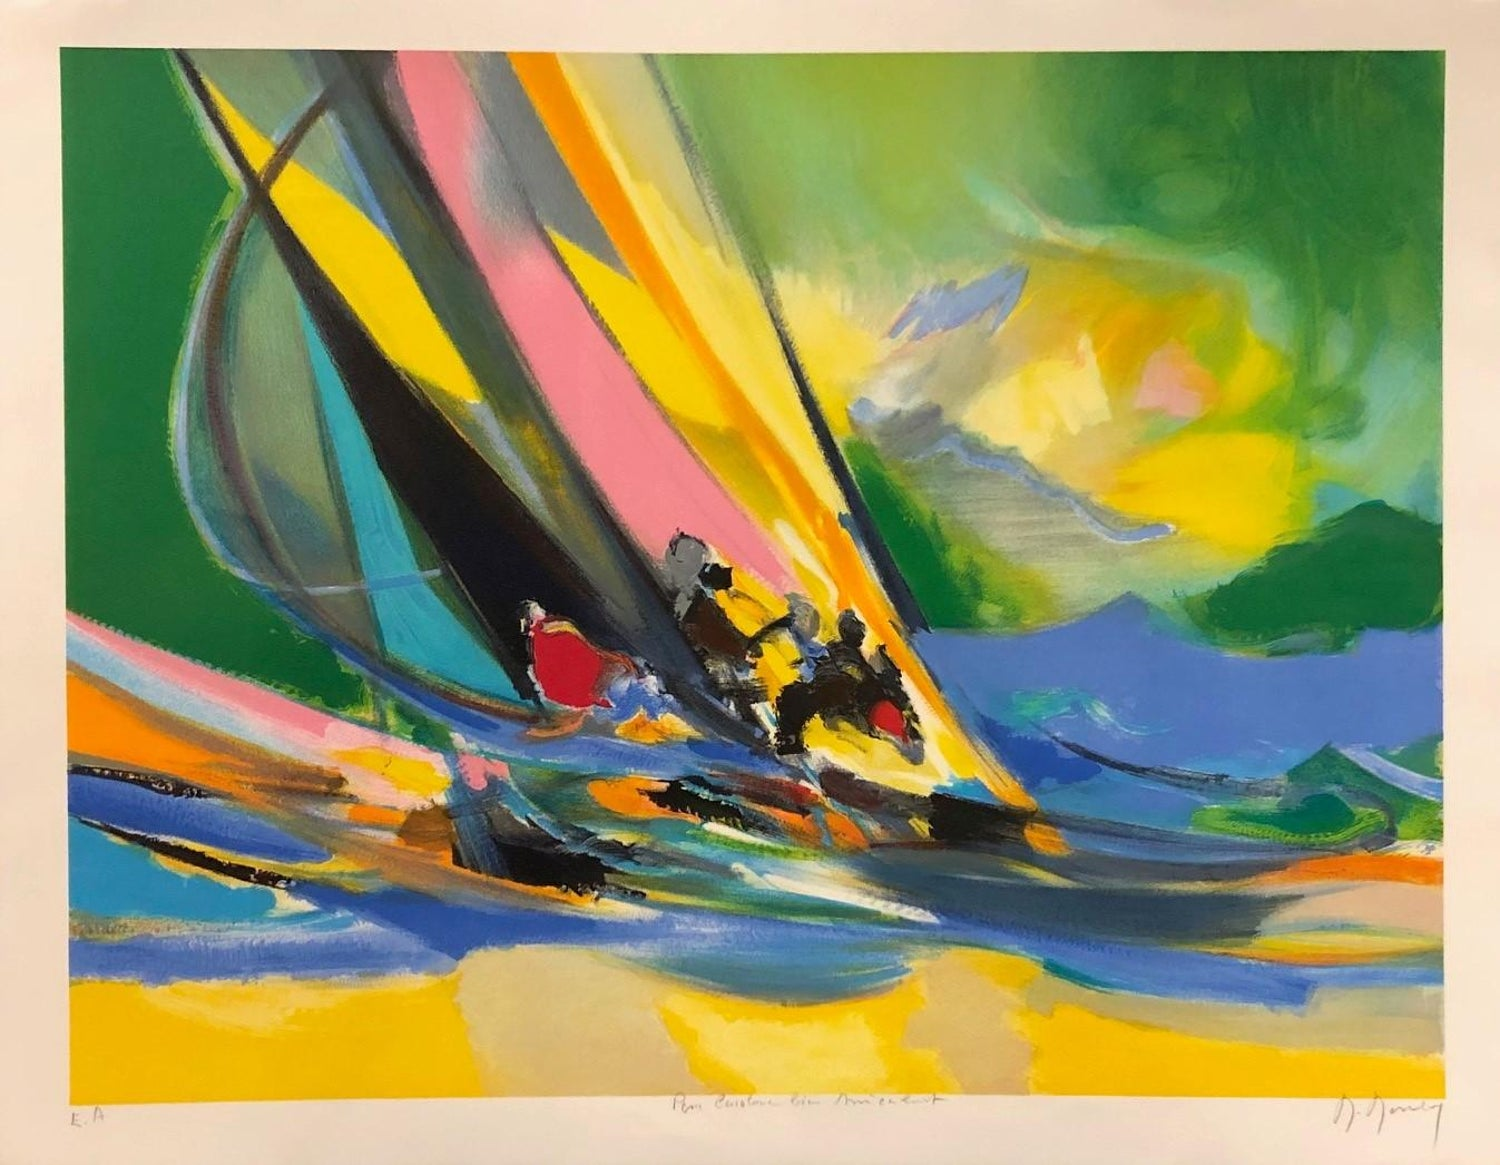 Marcel Mouly Four Yachtsmen Limited Edition Lithograph E A Pencil Signed By Artist For Sale At 1stdibs